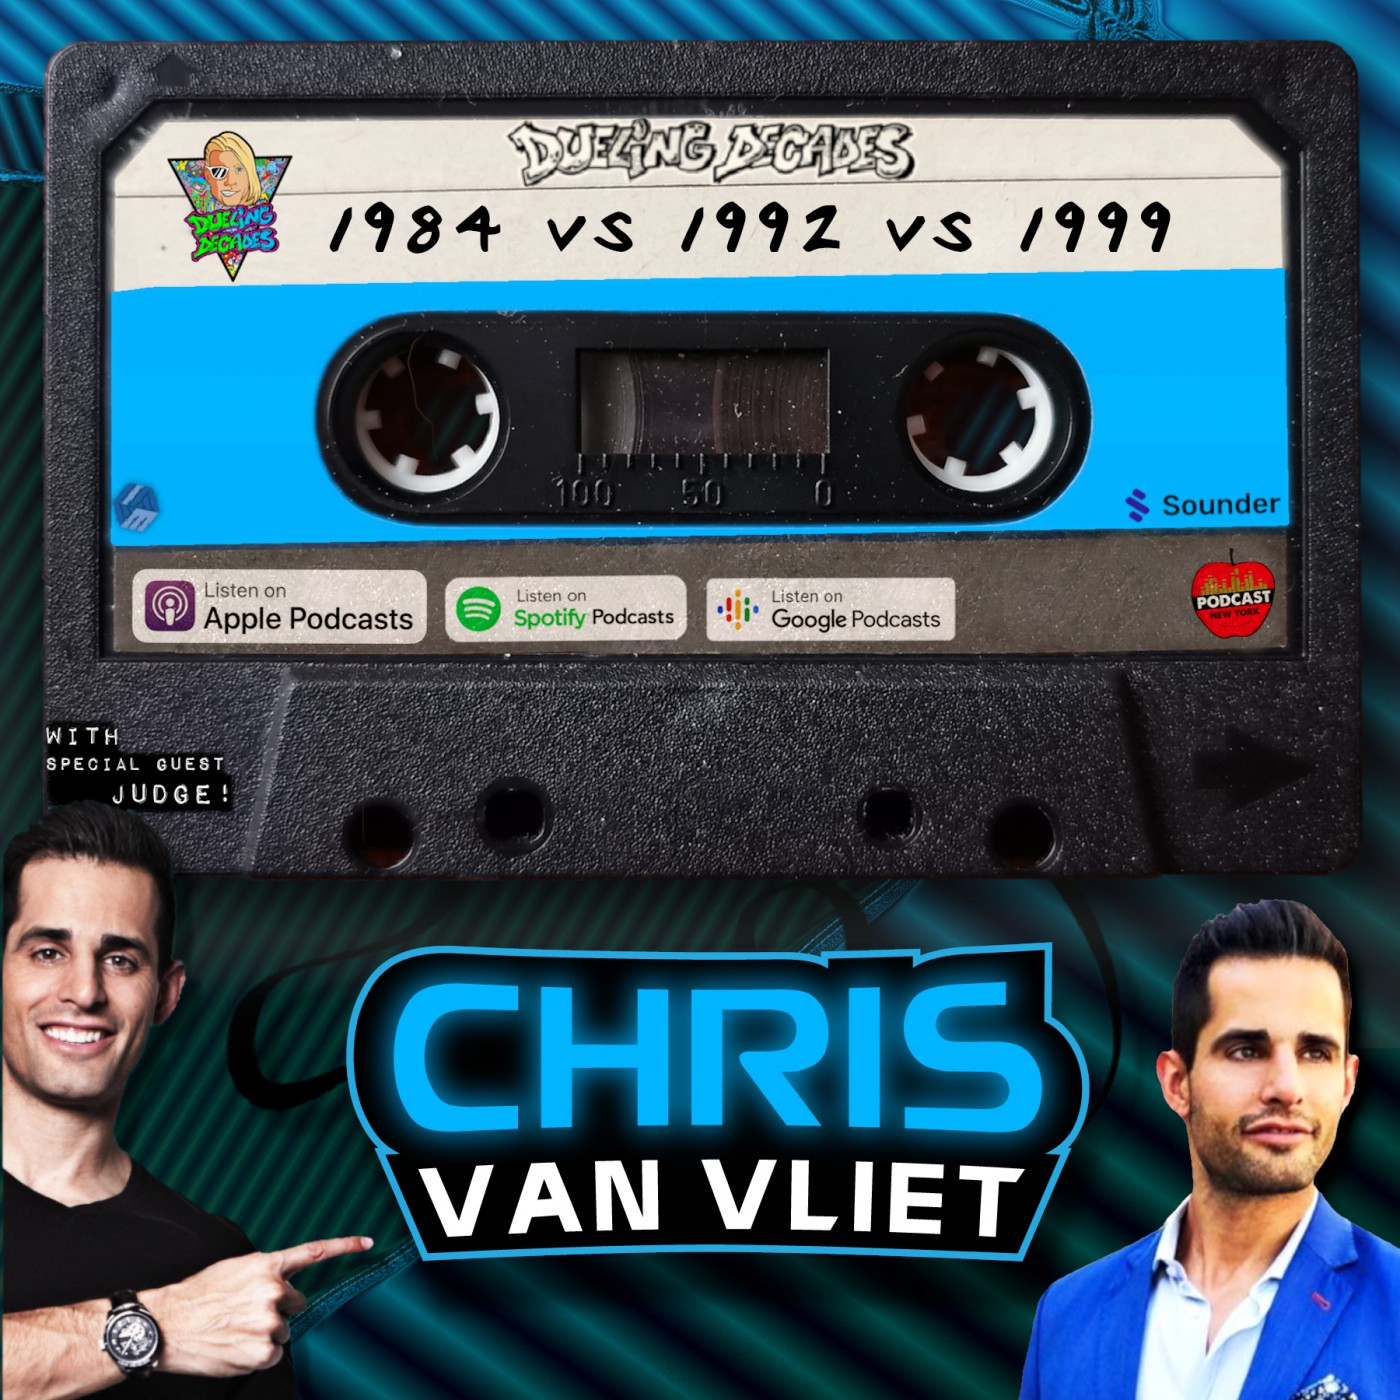 Chris Van Vliet renders his verdict on this wrestling duel between 1984, 1992 & 1999!